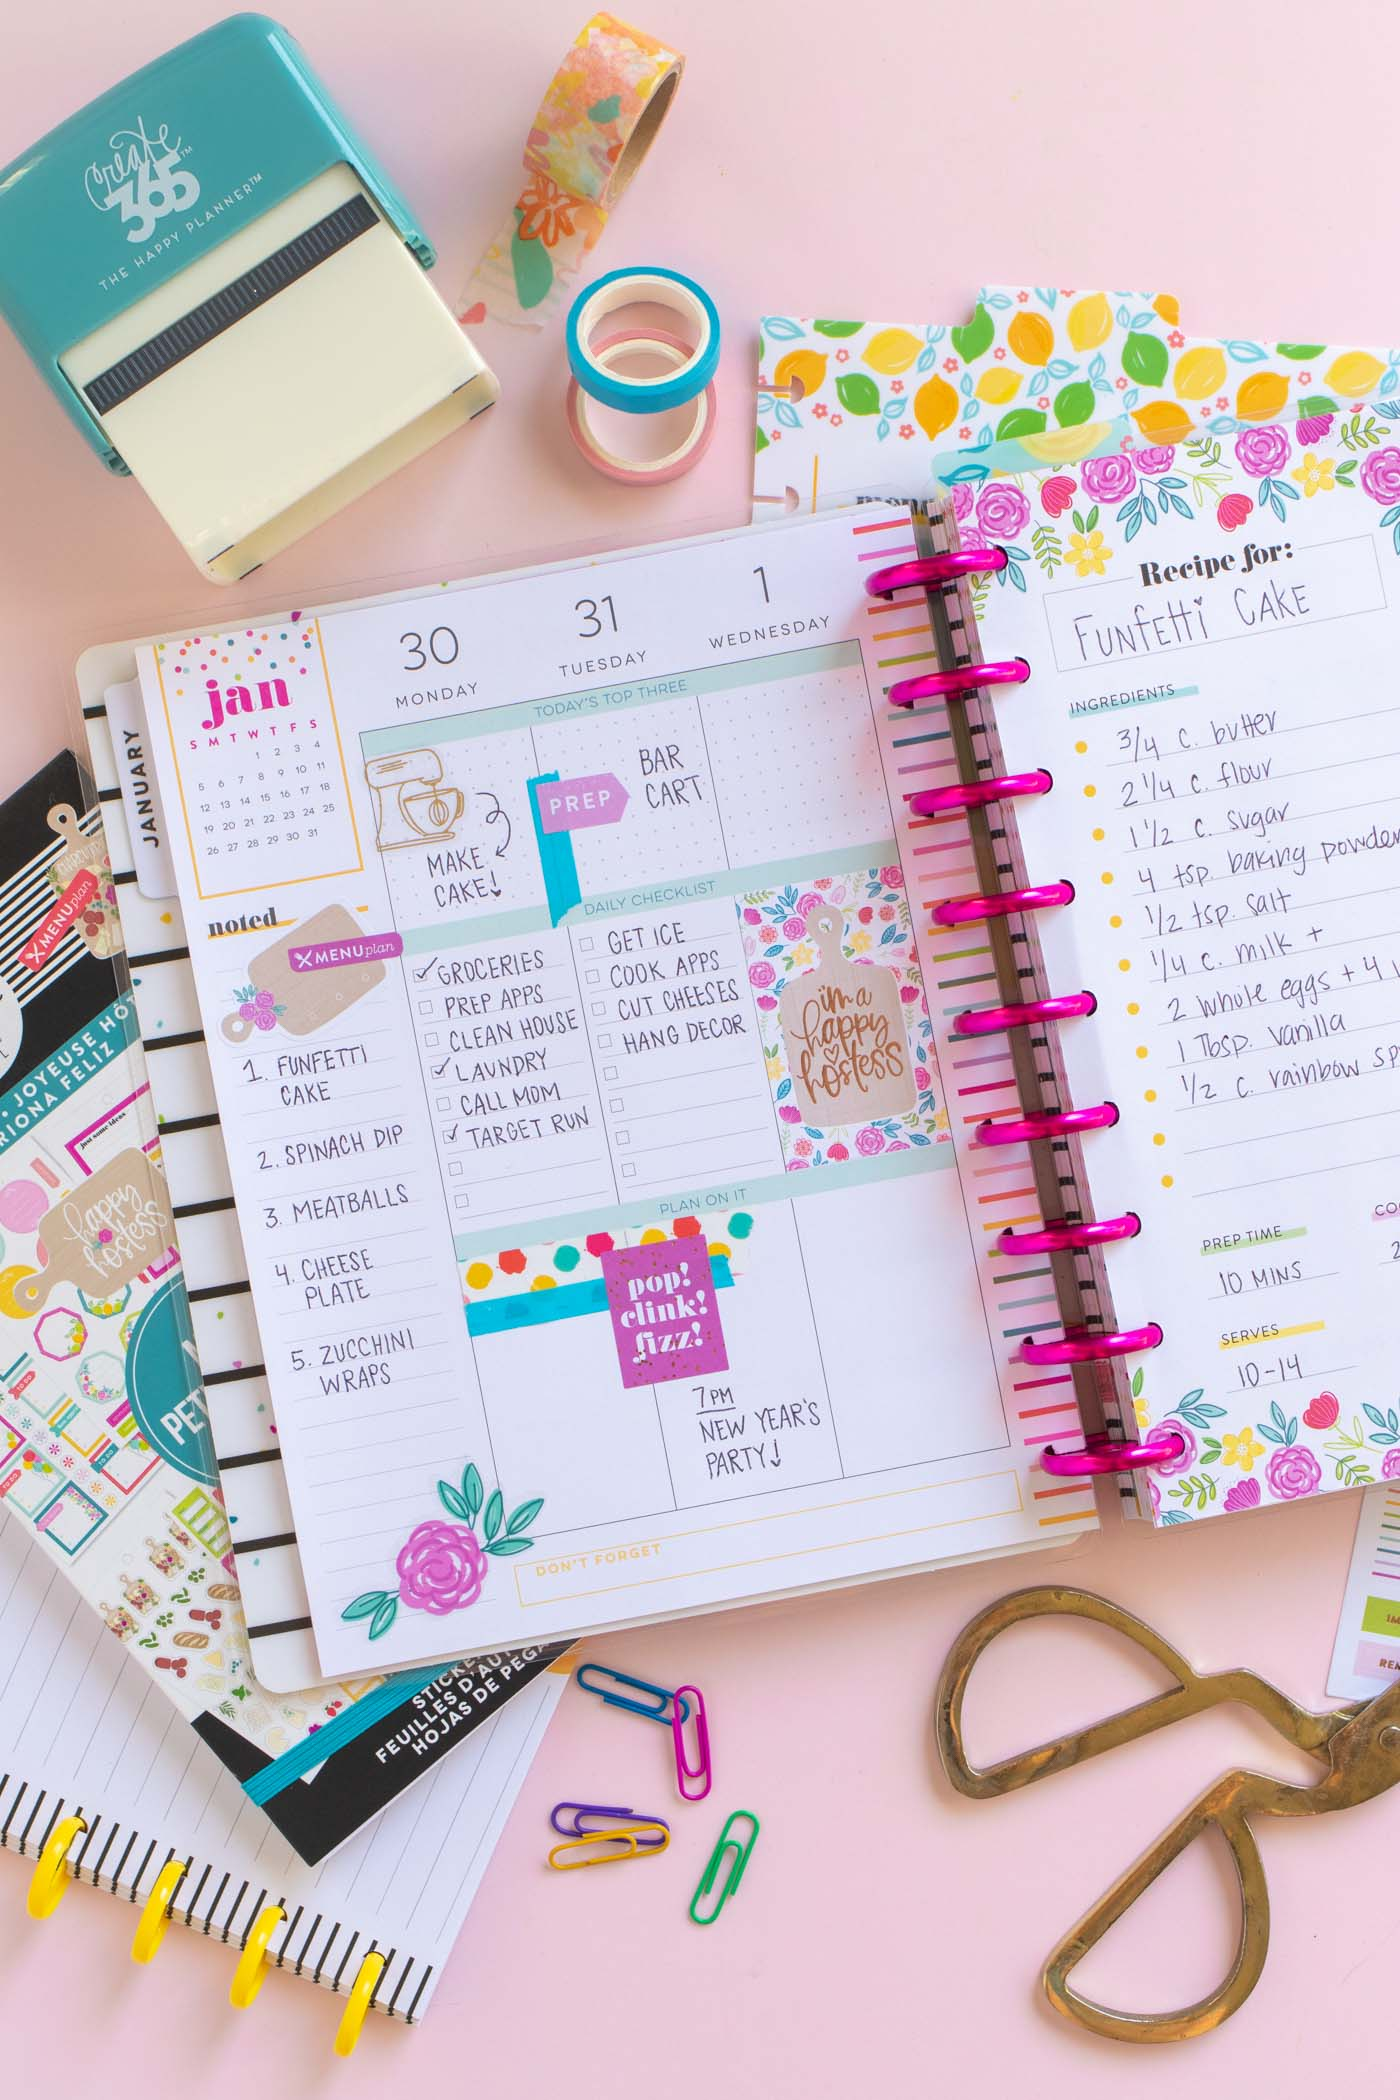 Planning with the New Miss Hostess Happy Planner // #ad See how to start planning for 2020 in the new Miss Hostess Happy Planner at @joann! Use stickers, folders, dry erase pages and recipe cards for event planning and entertaining prep in your planner! #handmadewithjoann #happyplanner #plannerinspiration #plannerideas #planning #entertaining #papercrafts